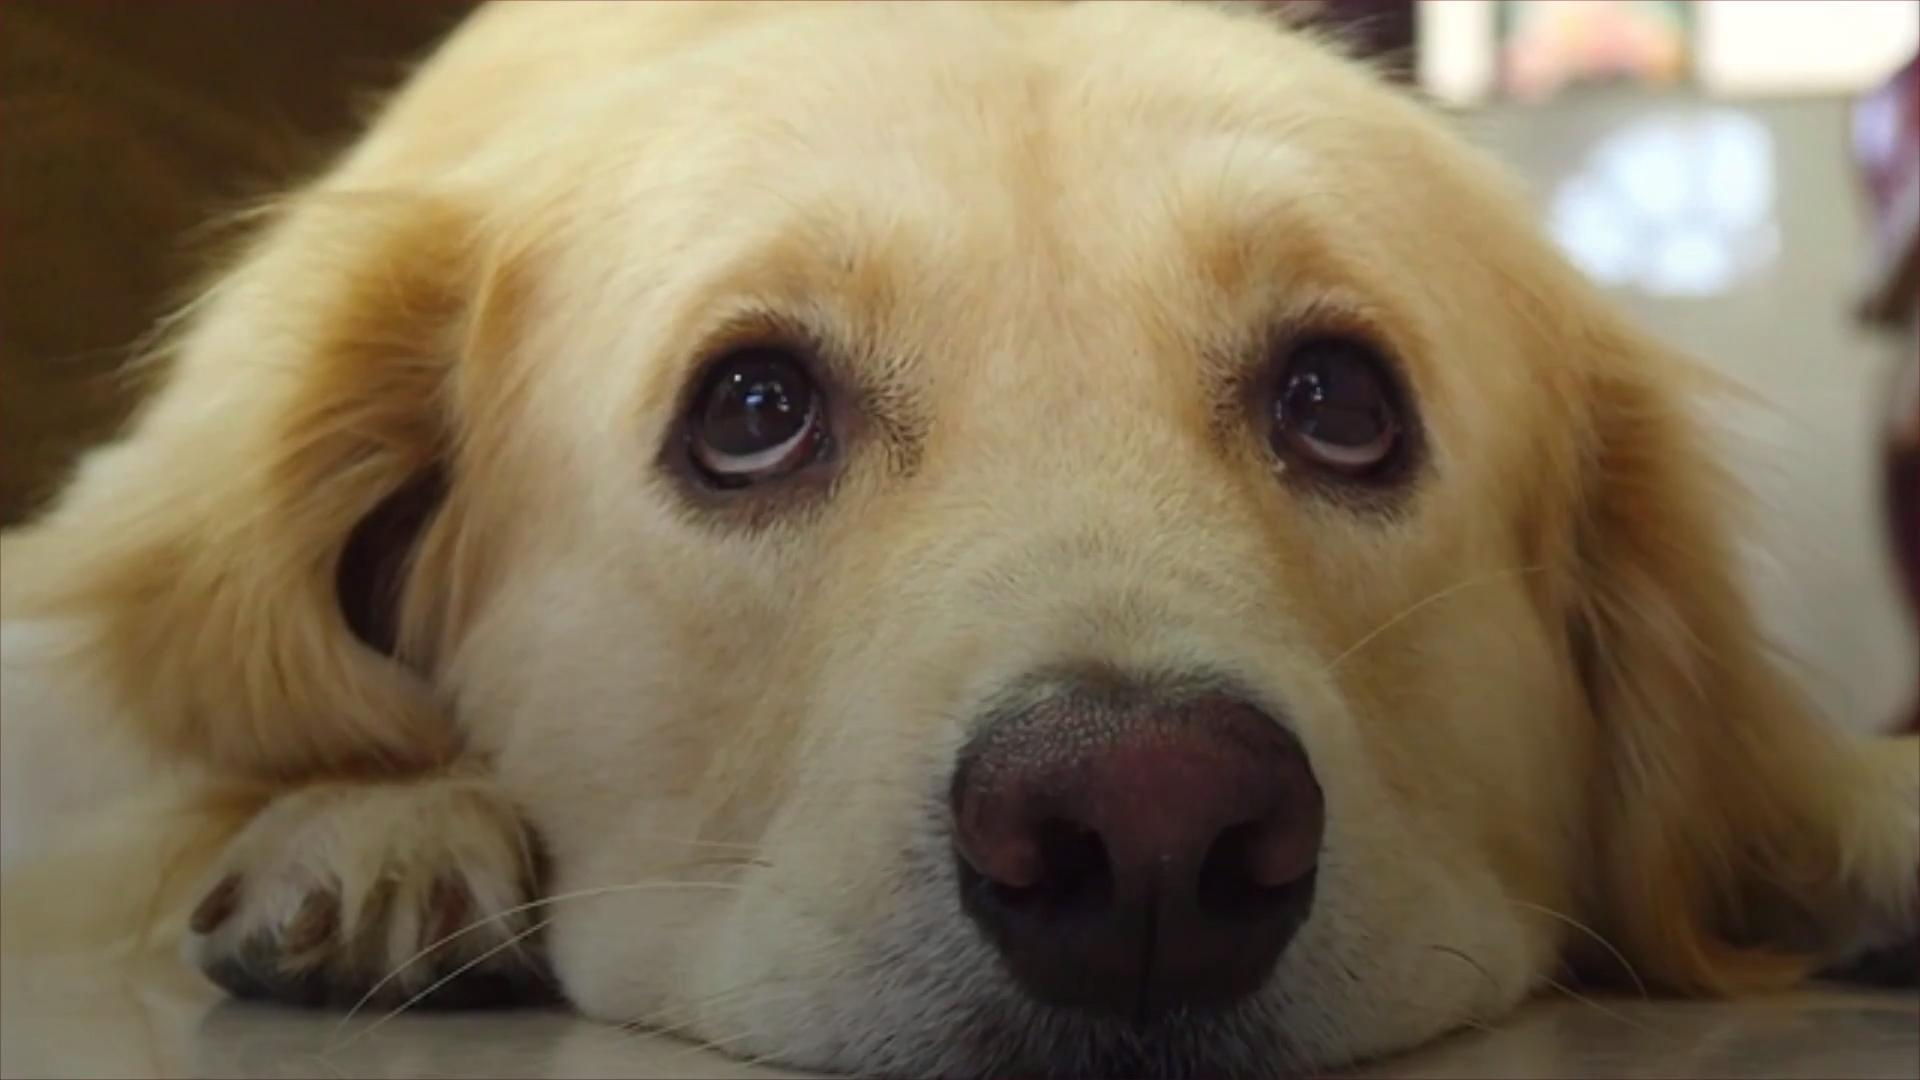 WATCH: Dogs Evolved to Have Eyebrow Muscles—and More Effectively Pull on Our Heartstrings